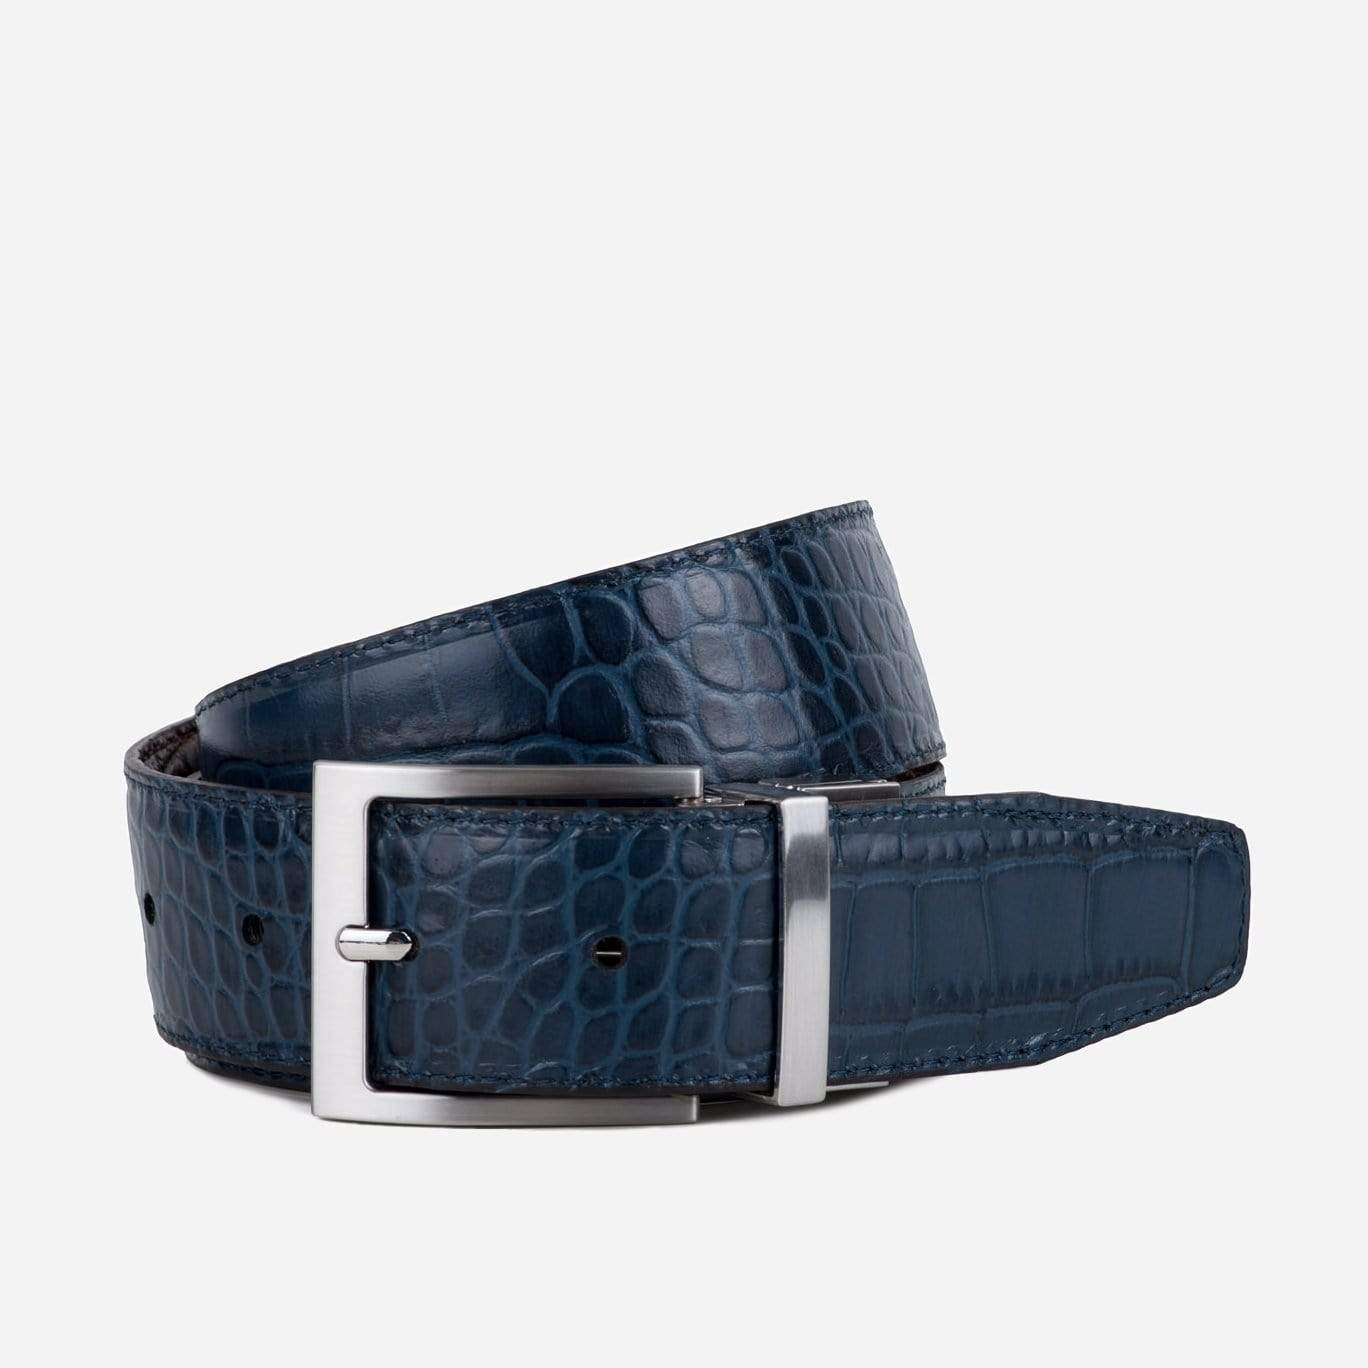 Goodwin Smith Accessories MARIO REVERSIBLE BROWN AND NAVY